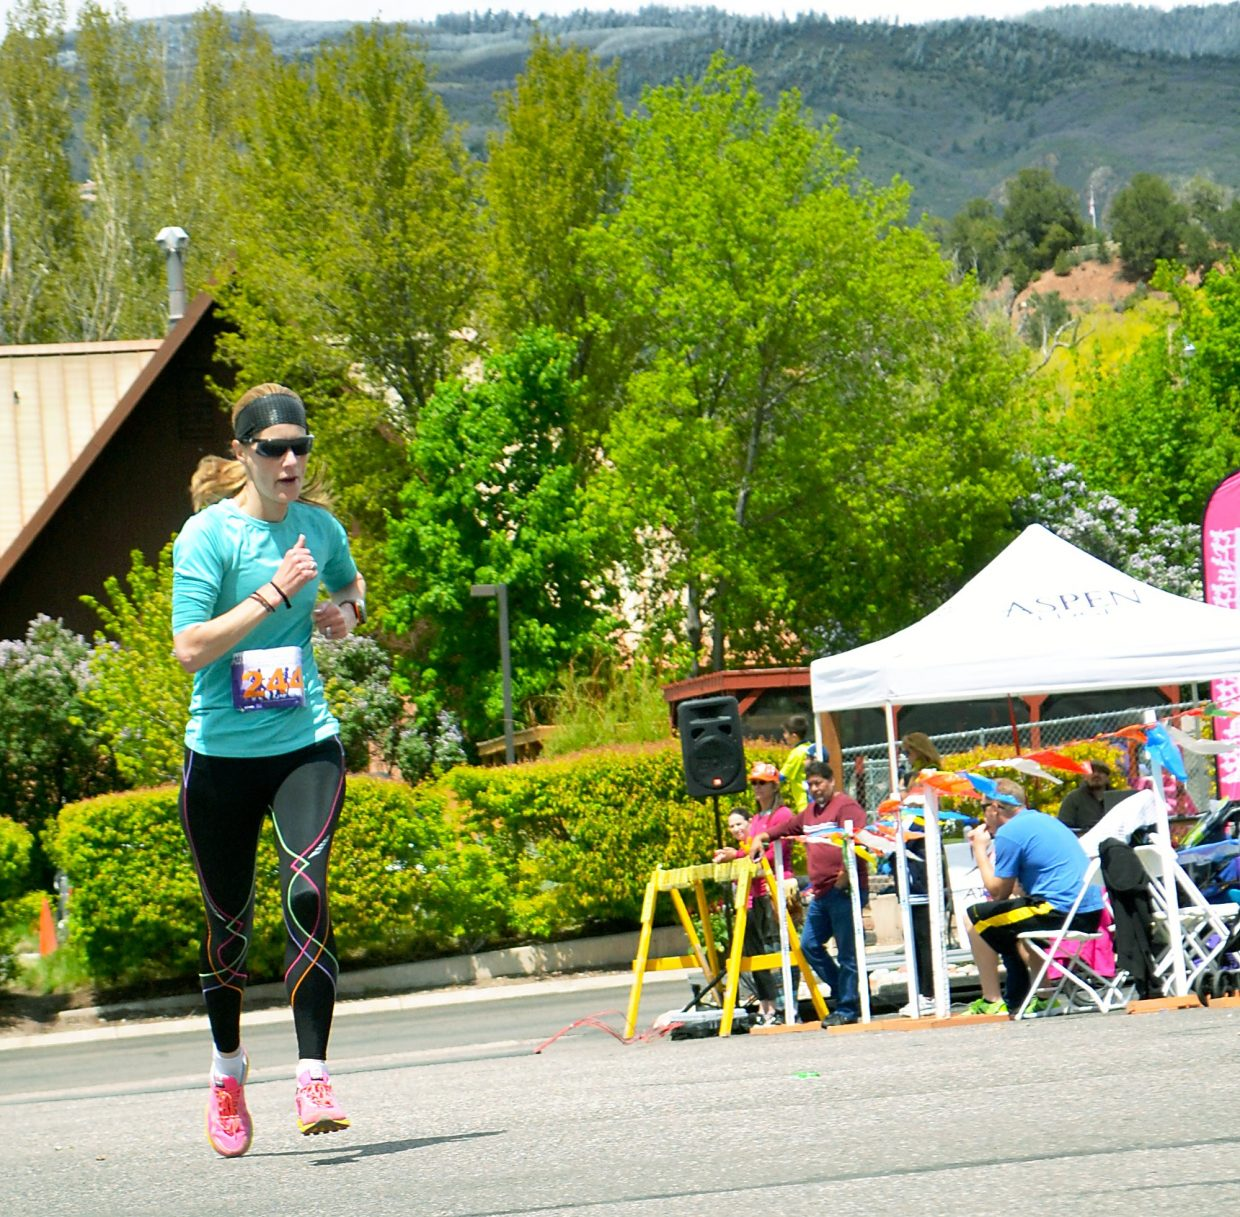 Ellen Brooks, 46. was the top female finisher in &:19 in the 40 and older division of Sunday's Mother's Day Mile.